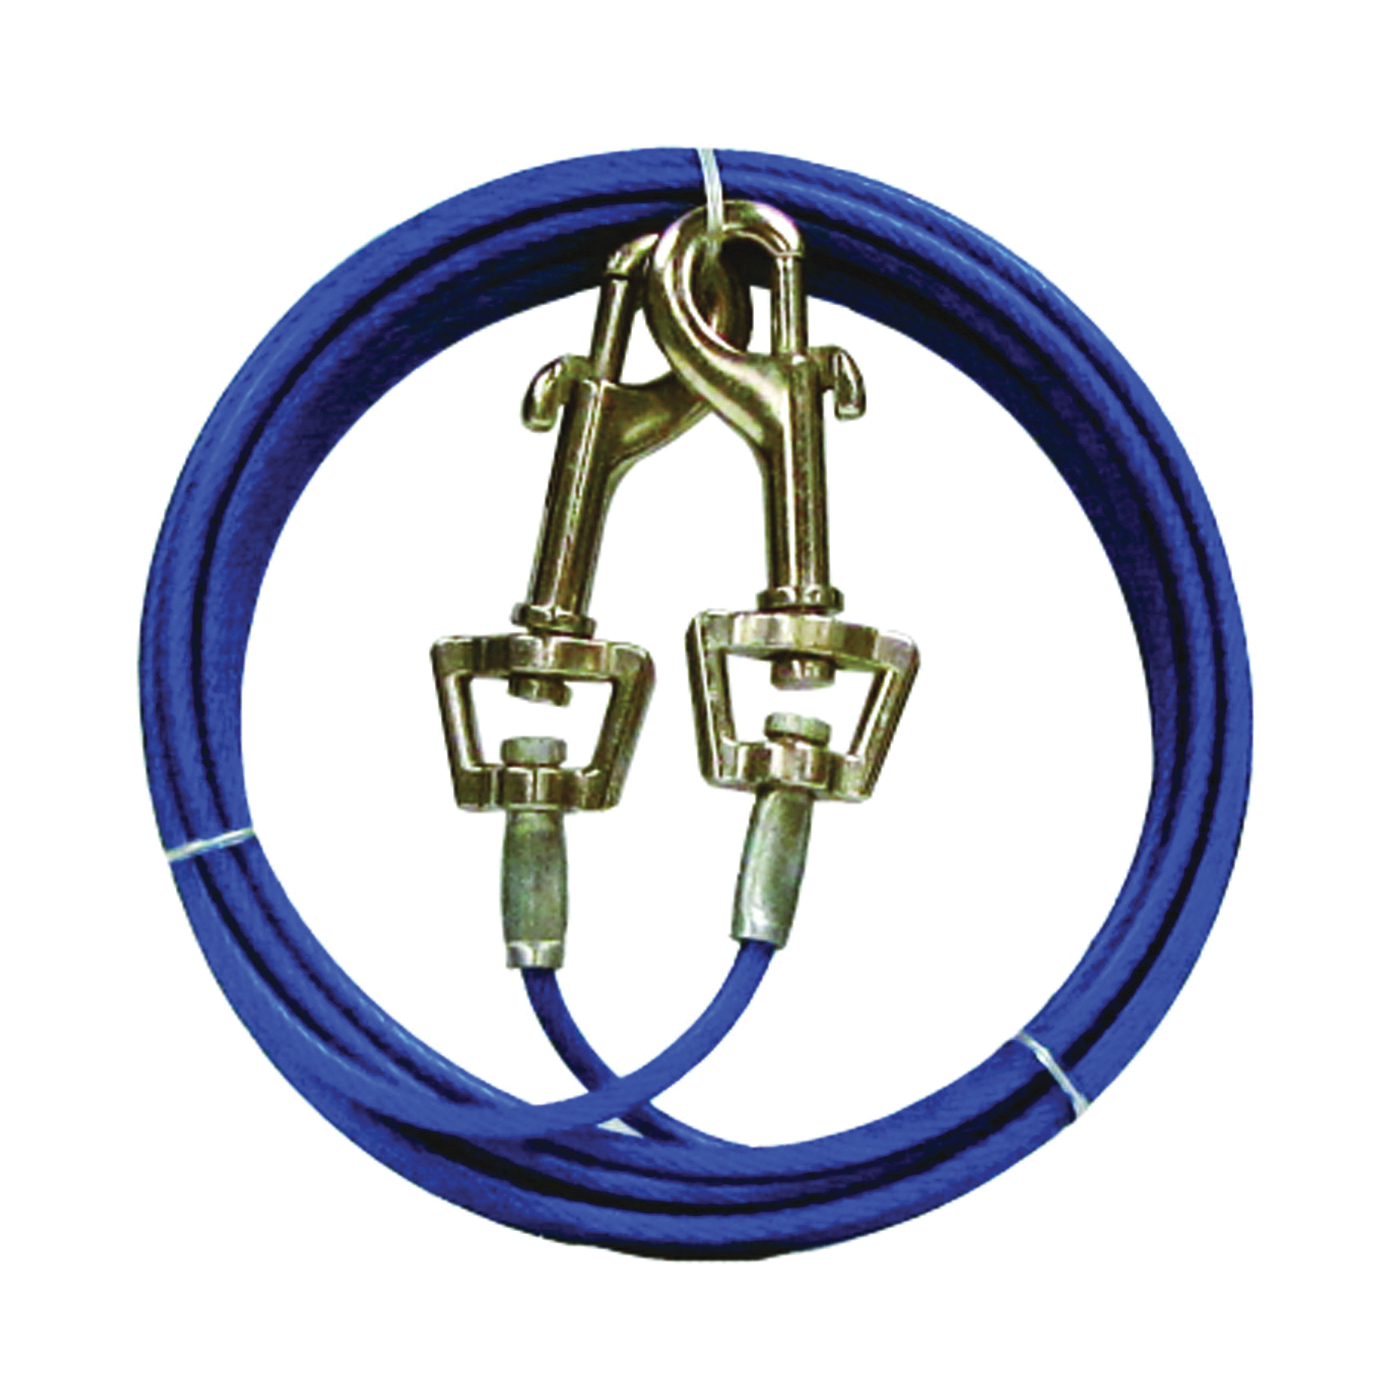 Picture of Boss Pet PDQ Q233000099 Pet Tie-Out Belt with Twin Swivel Snap, 30 ft L Belt/Cable, For: Medium Dogs Up to 35 lb